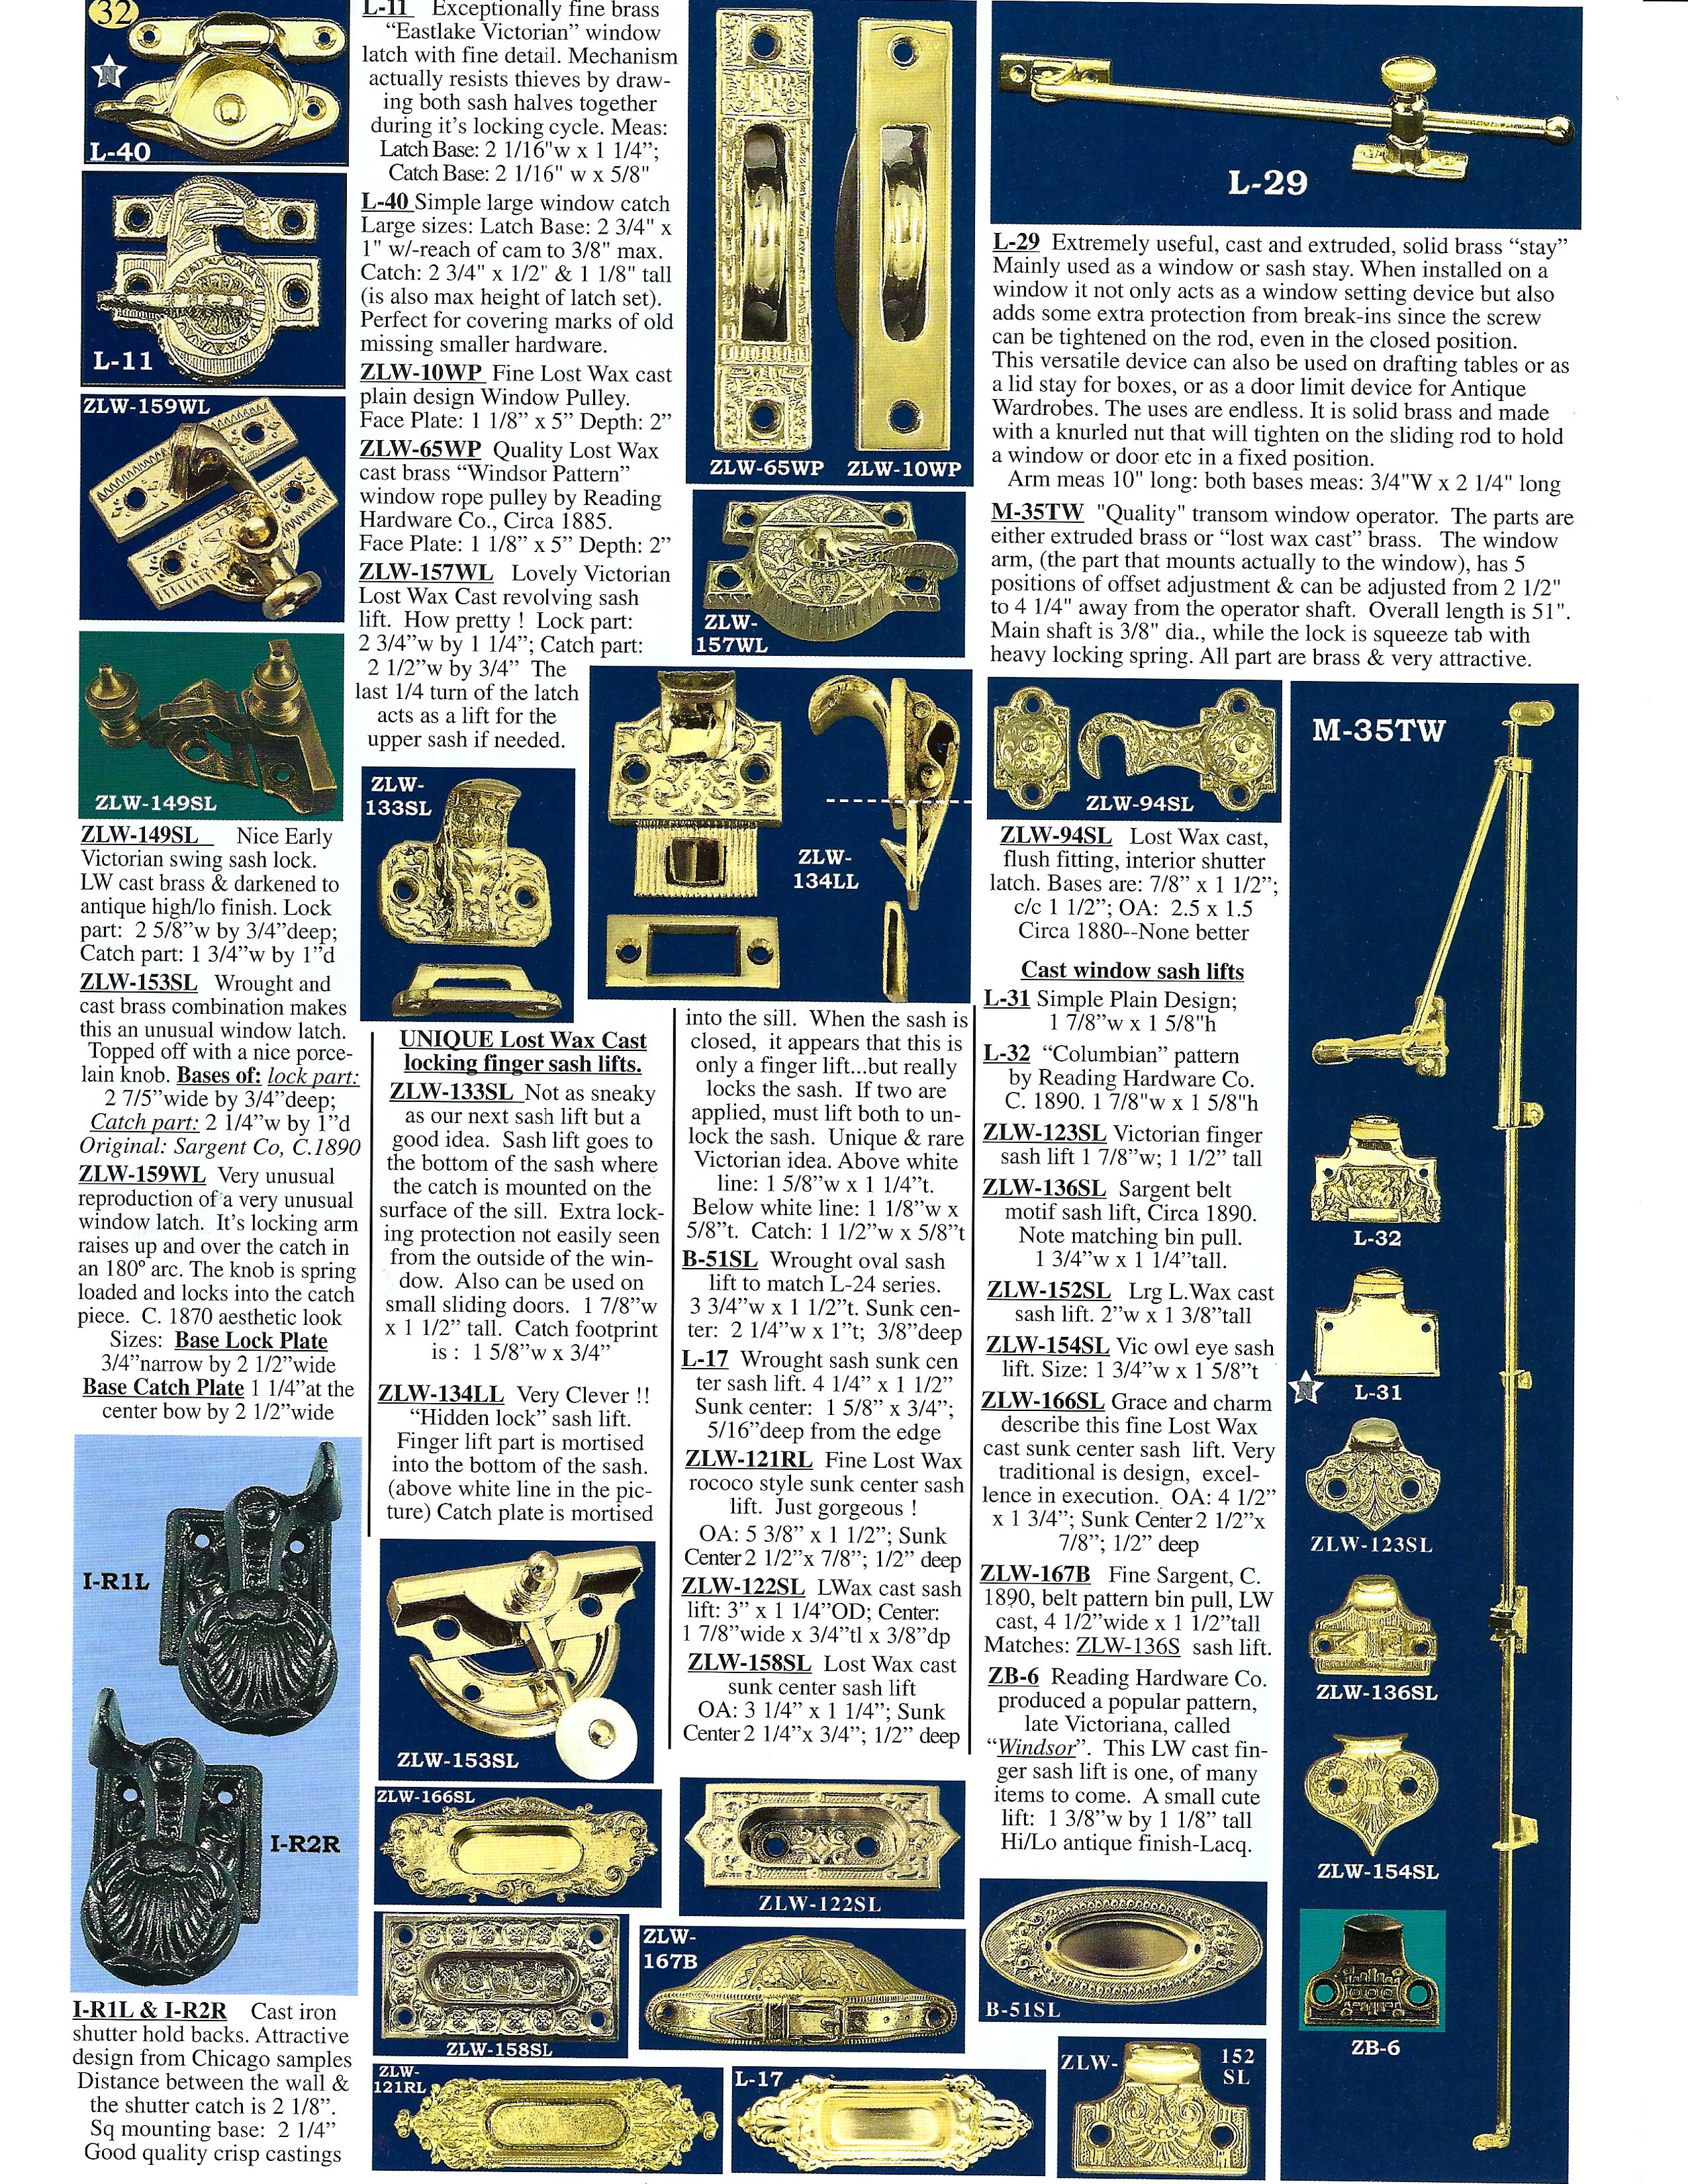 Catalog page 32